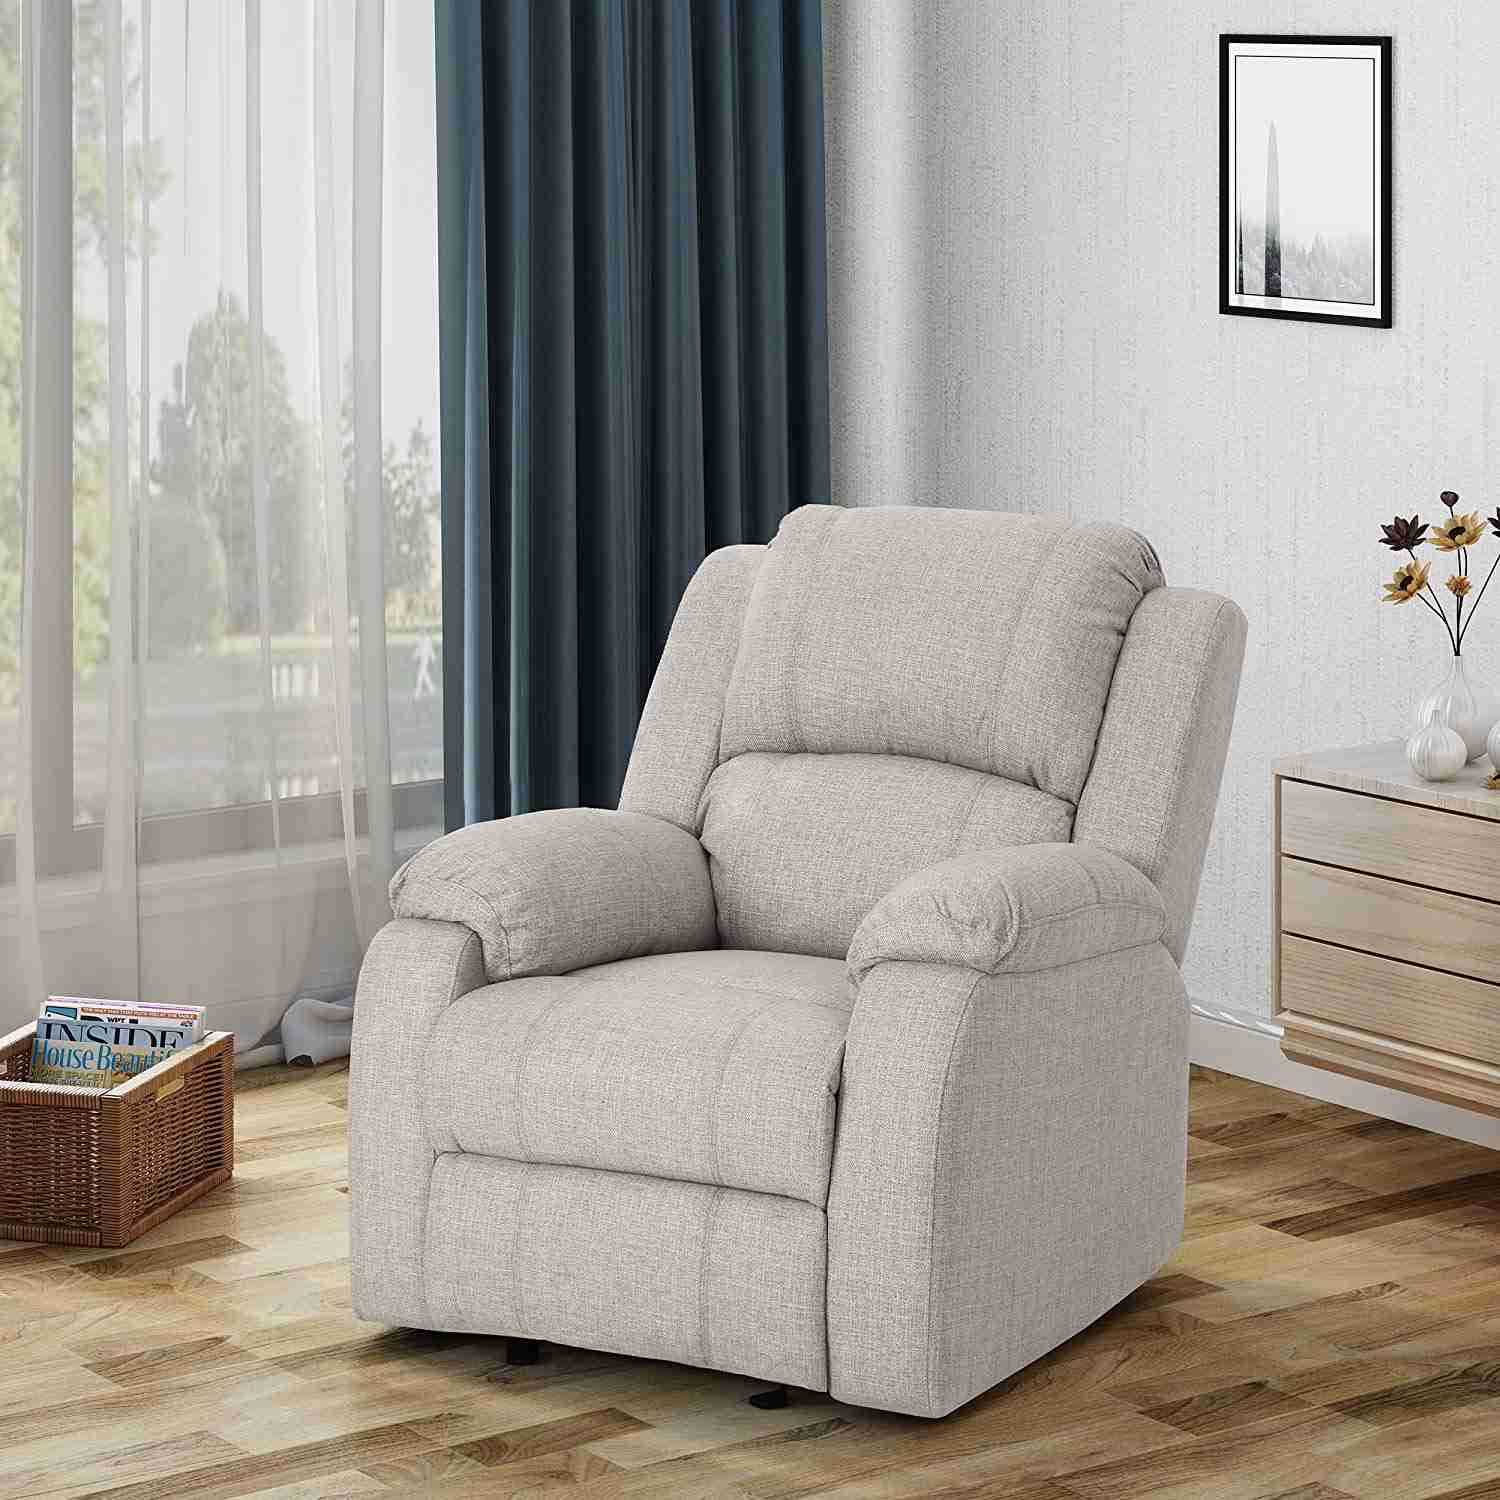 10 Best Recliners under $300 You Won't be able to Live